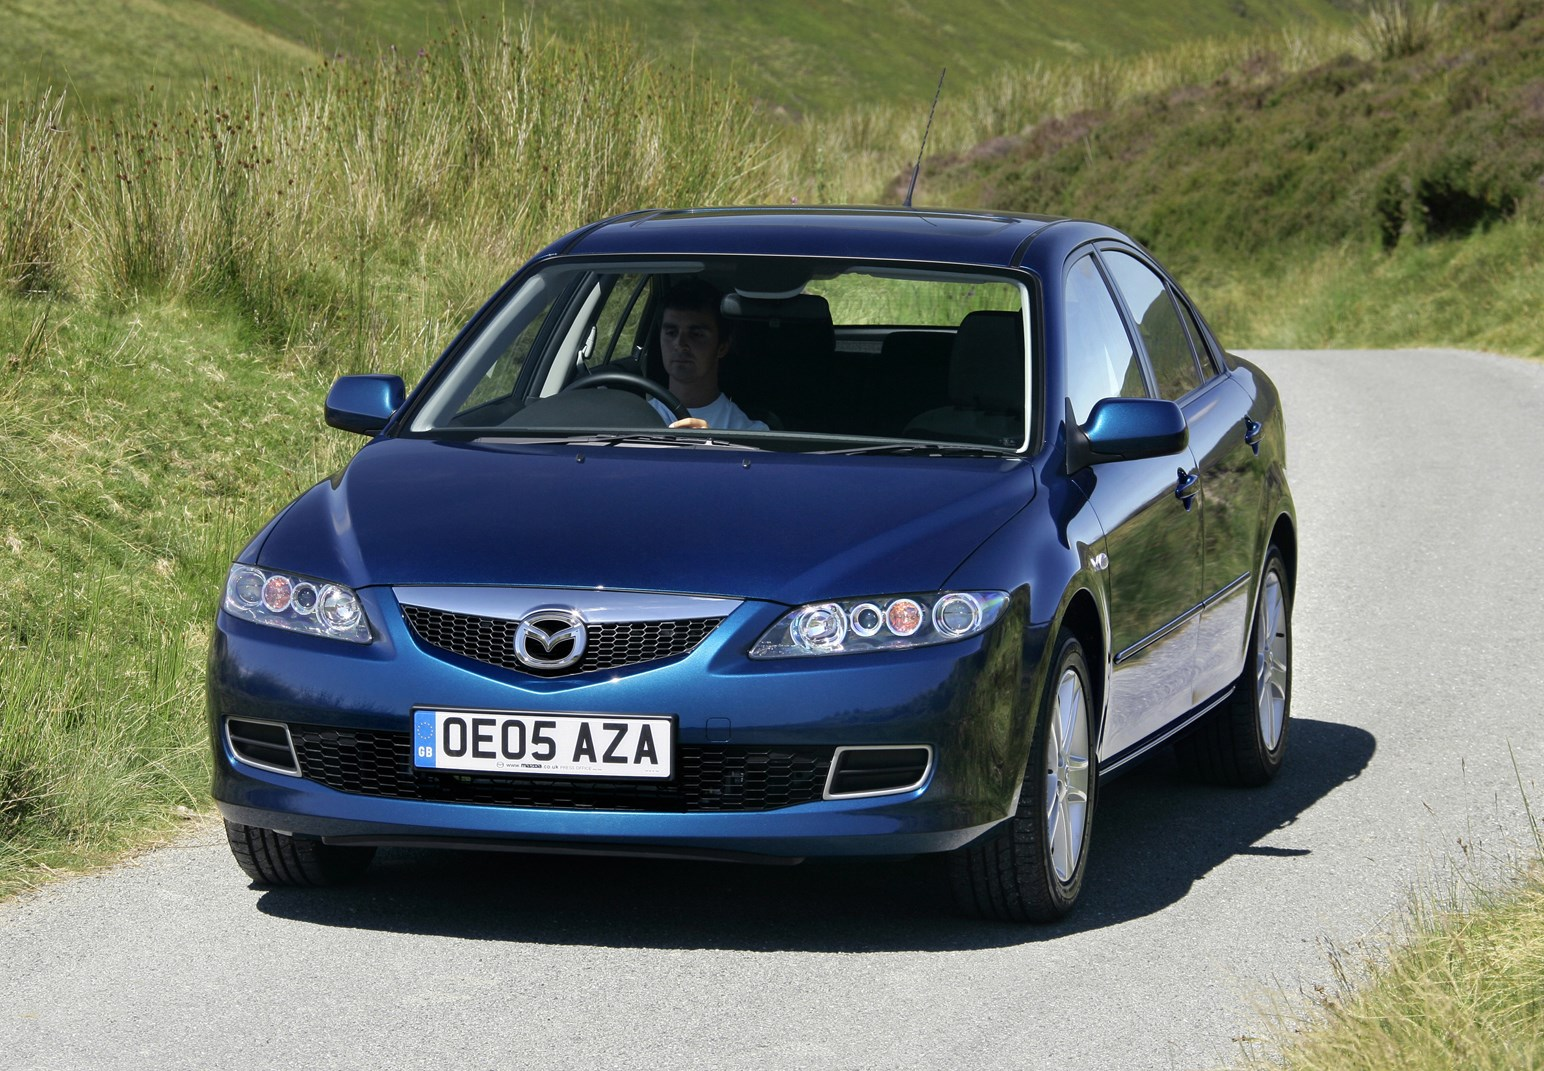 View All Images Of The Mazda 6 Hatchback (02 07)